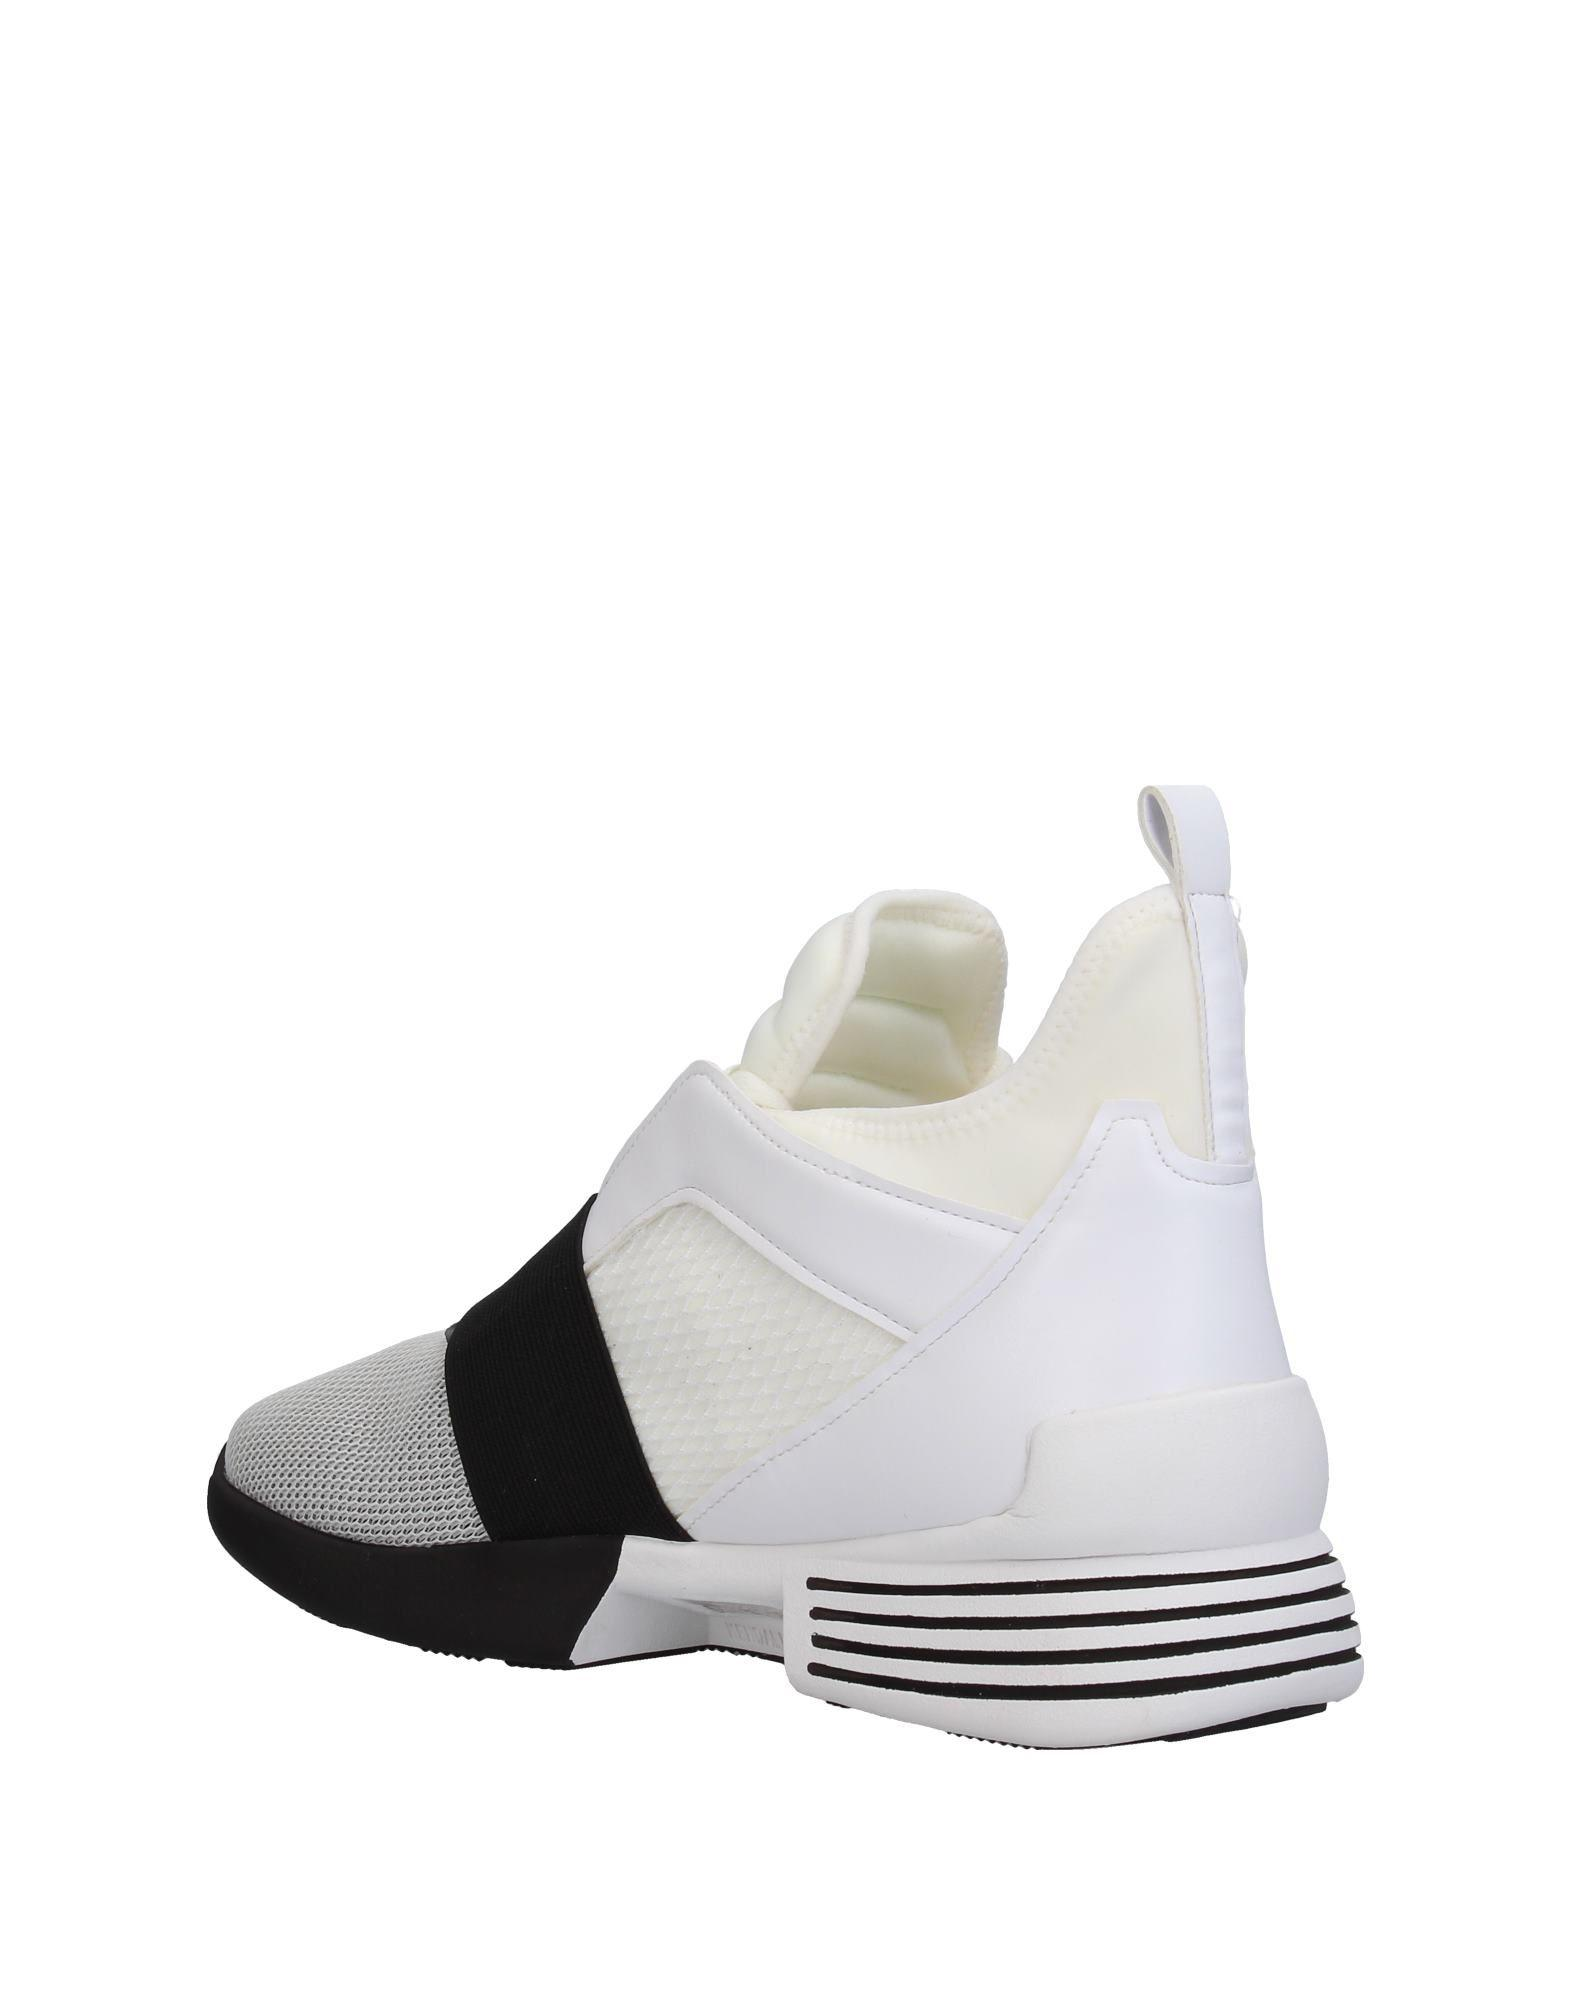 Kendall + Kylie High-tops & Sneakers in White